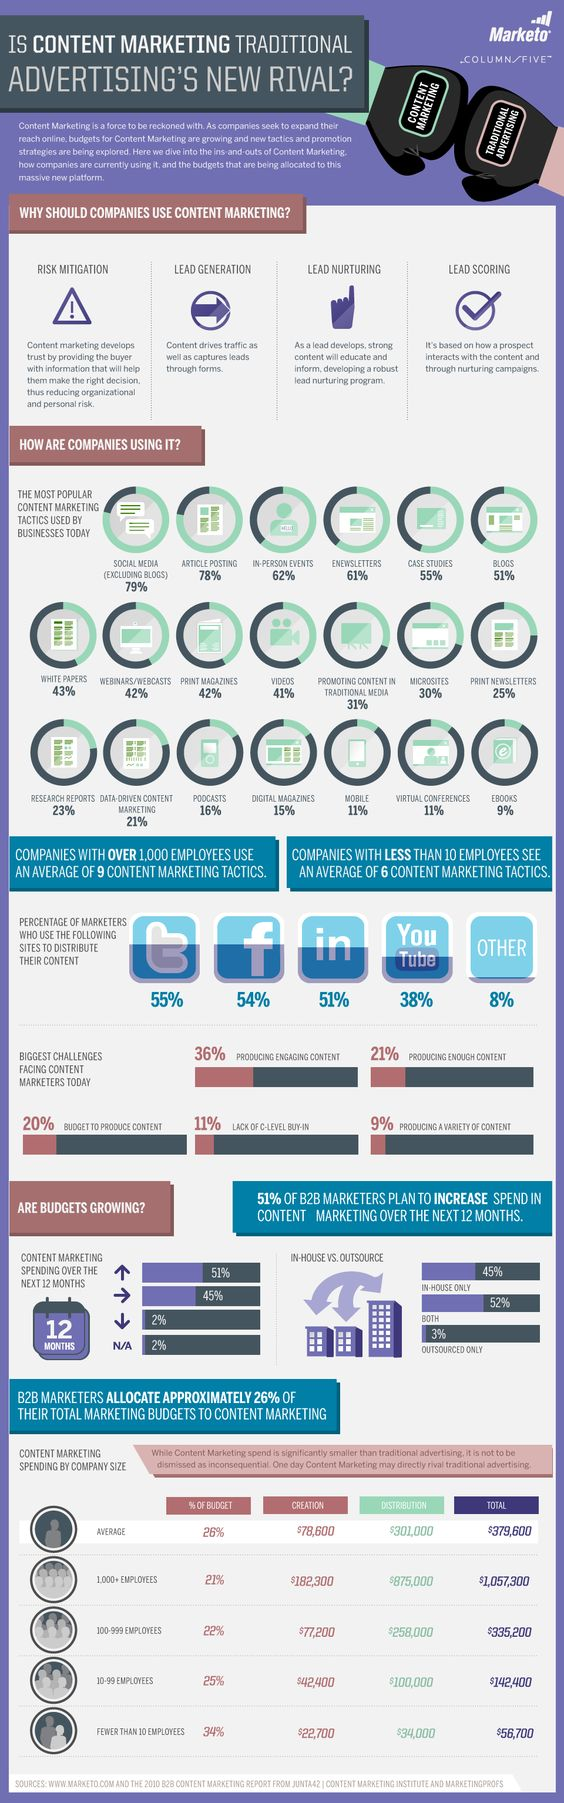 Content Marketing vs. Traditional advertising #infographic @Marketo